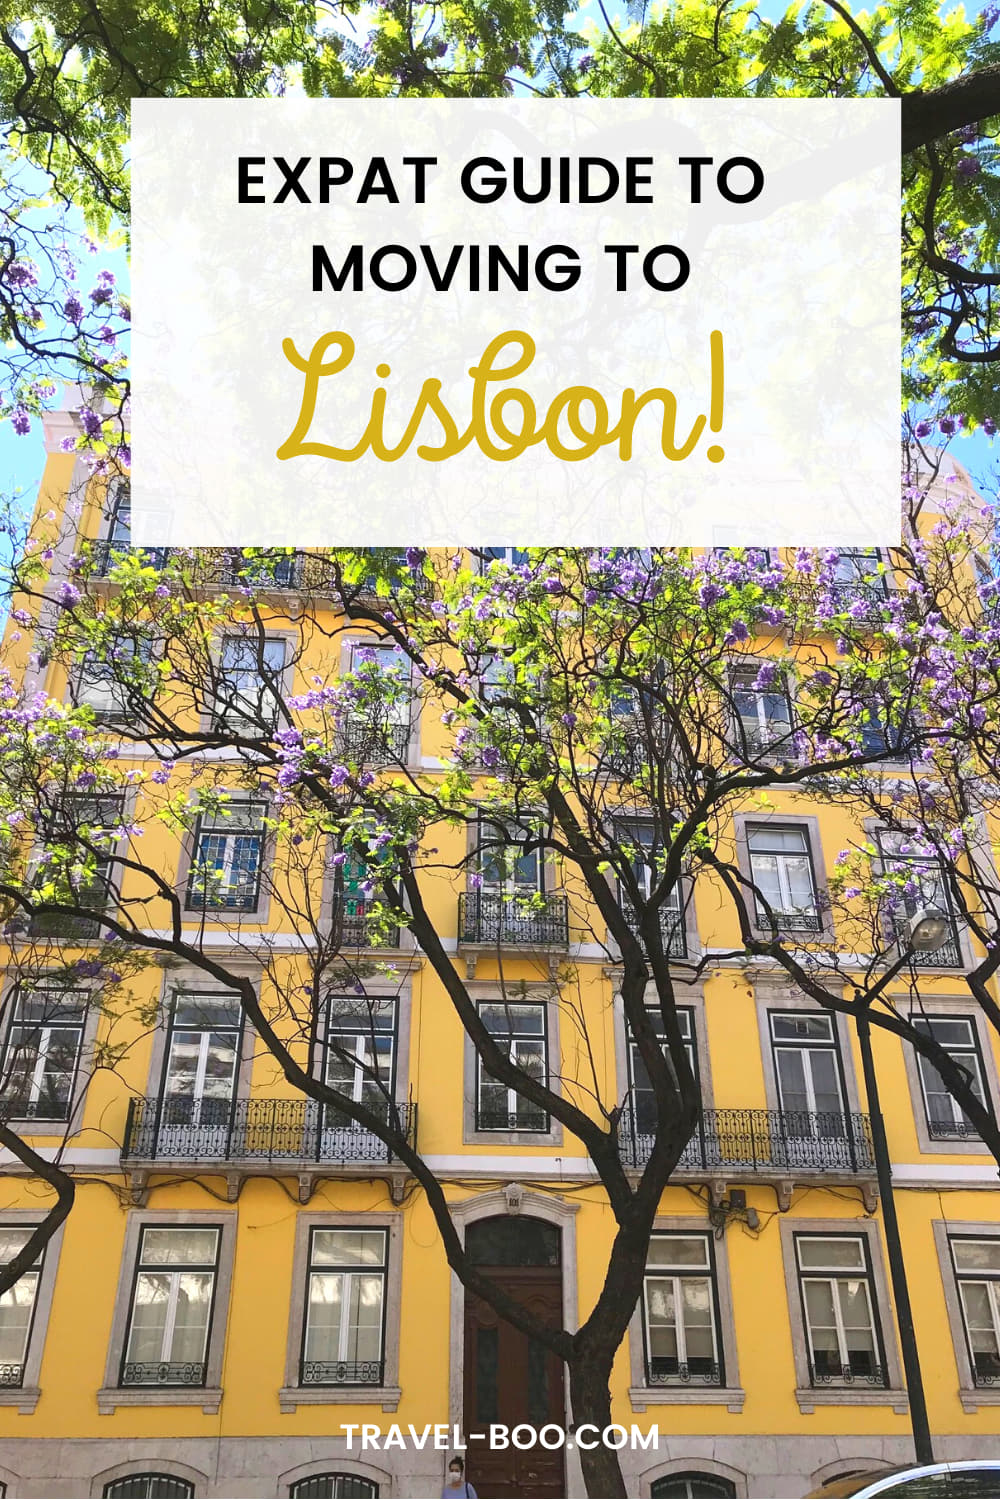 Living in Lisbon, Expat Guide to Moving to Portugal! Portugal Travel, Lisbon Travel, Move to Portugal, Move to Lisbon, Lisbon Expats, Lisbon Expat Guide.